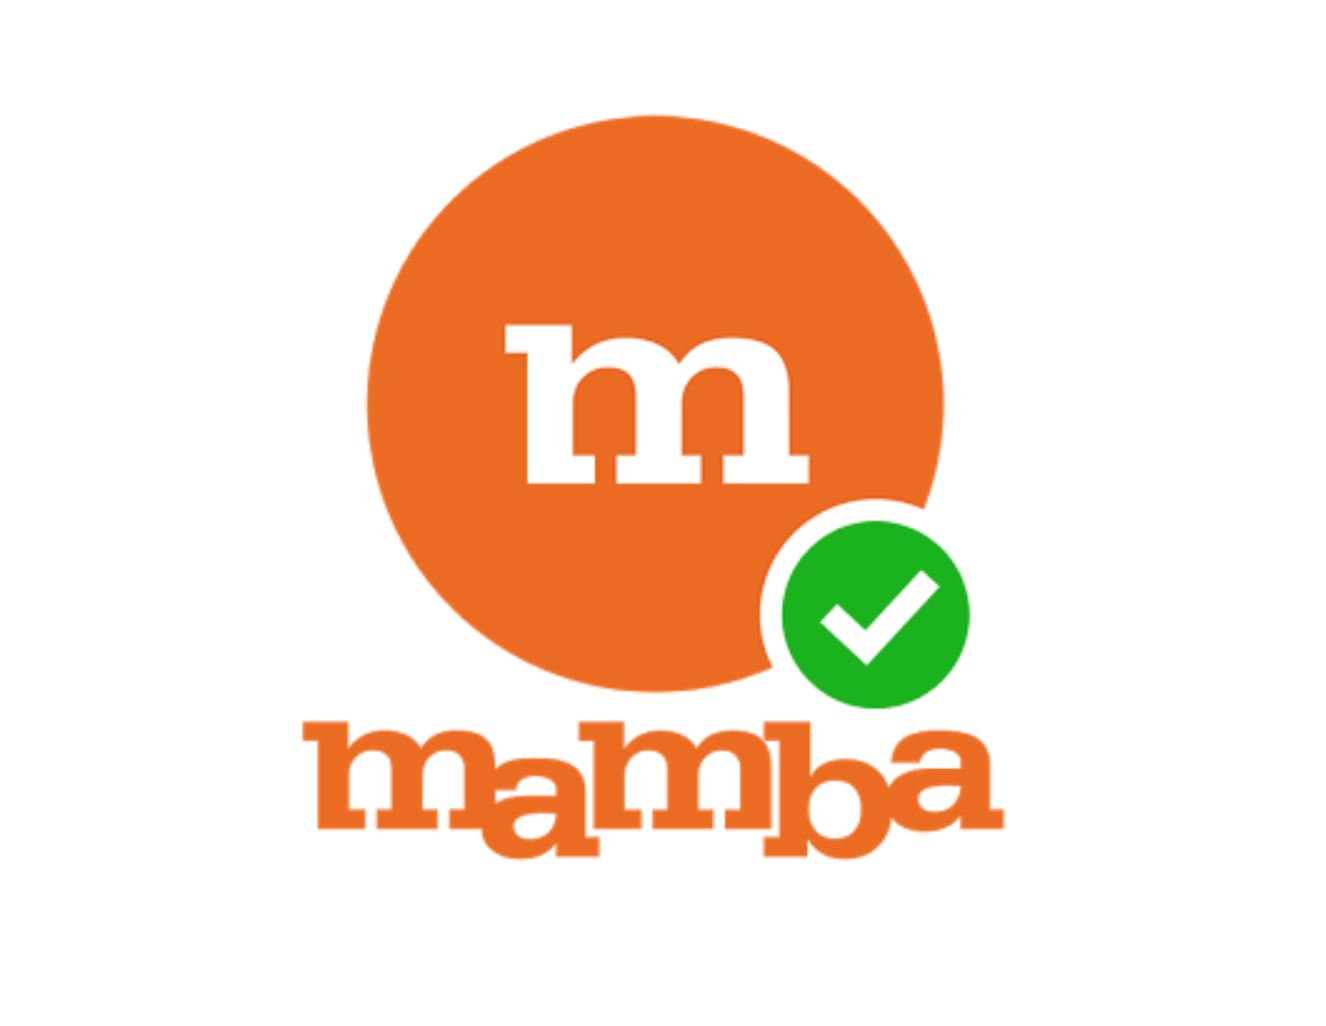 wamba dating Download wamba - meet women and men apk 4471 (4605_16aa2bb5) and all version history for android free dating app swipe right and meet new people  flirt using wamba don't miss your opportunity to meet your love with wamba • it is a free, quick and easy way to meet people download, register and start making new friends right now.